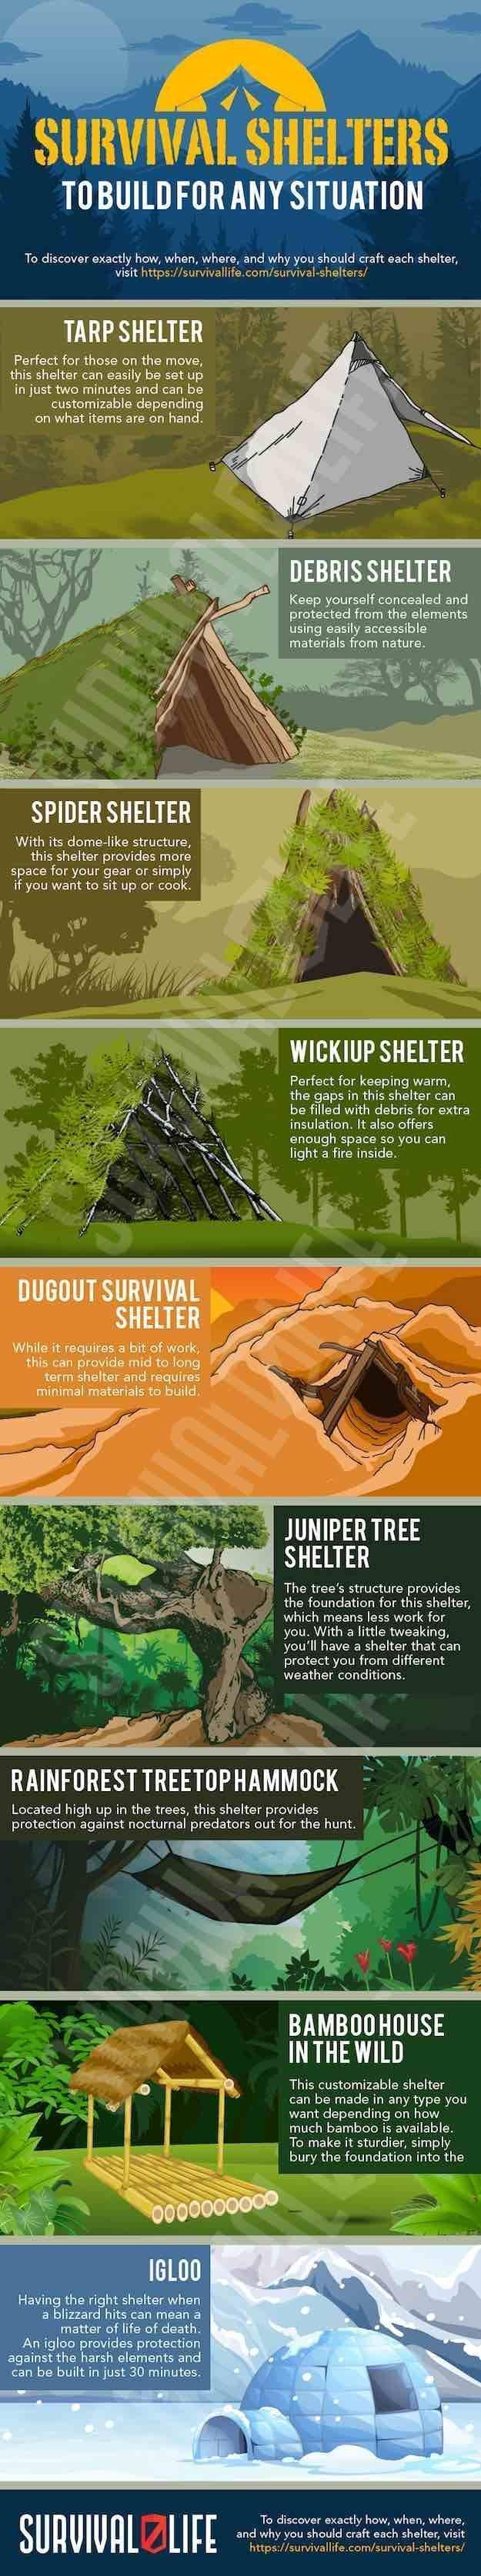 11661 best survival skills images on pinterest bushcraft diy survival shelters you need to know to survive anything httpssurvivallife solutioingenieria Images